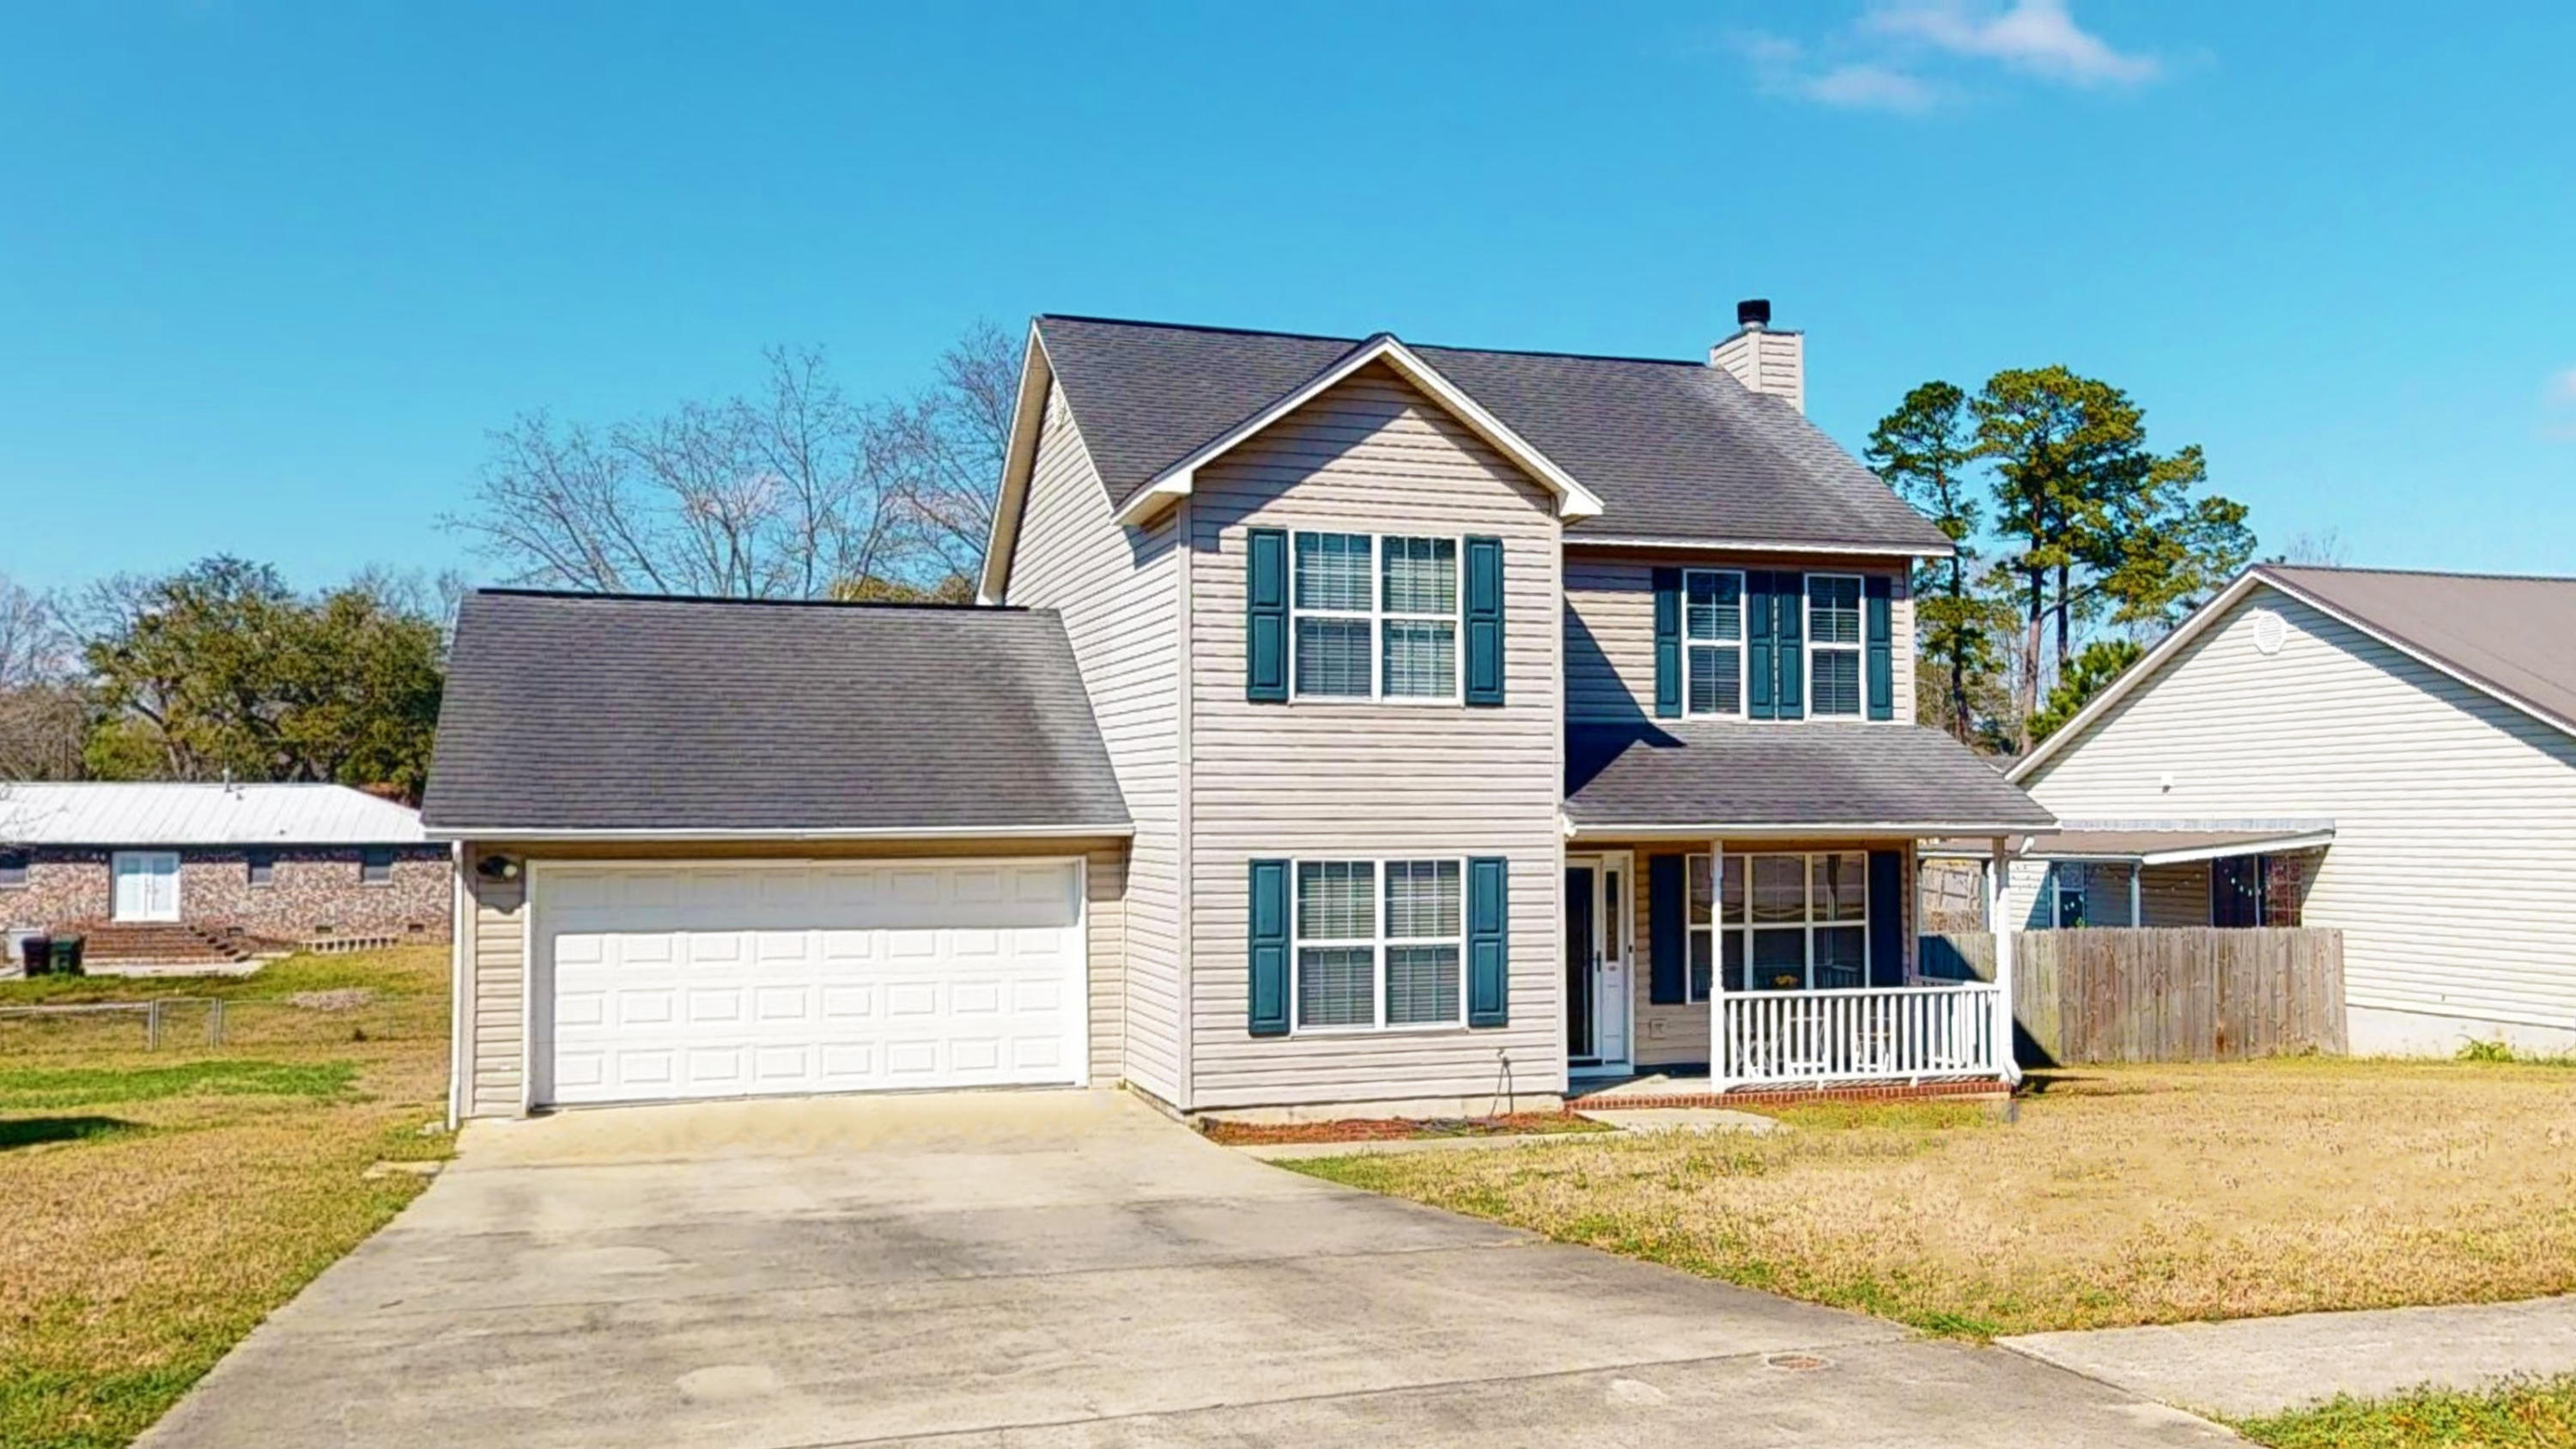 Camelot Village Homes For Sale - 113 Round Table, Goose Creek, SC - 6